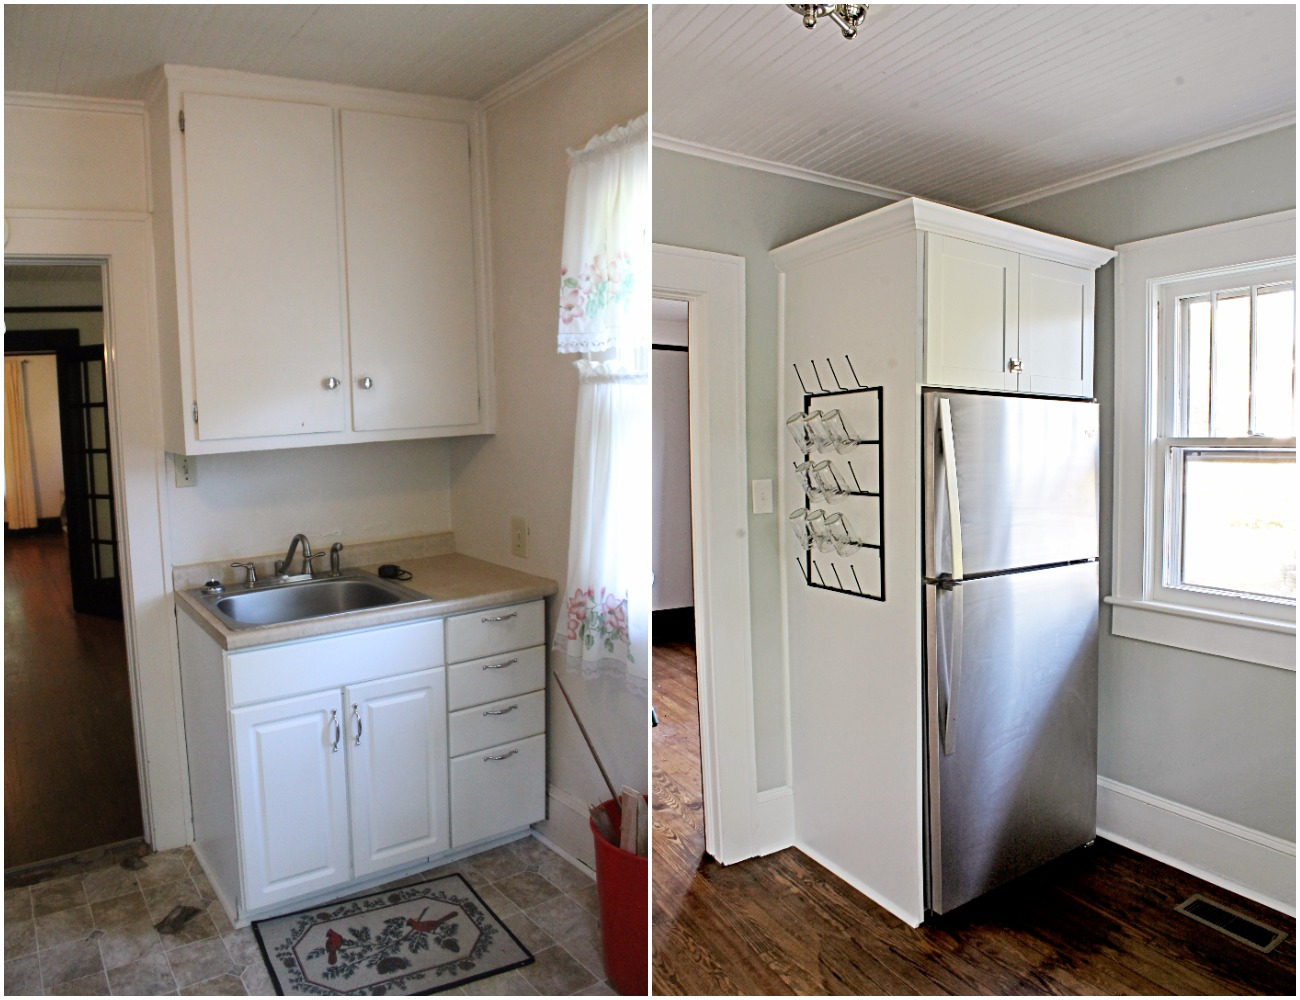 House Flipping Before and Afters - Budget Kitchen Renovation, Cheap Cabinets, Cheap Countertops - Sherwin Williams Silver Strand 26